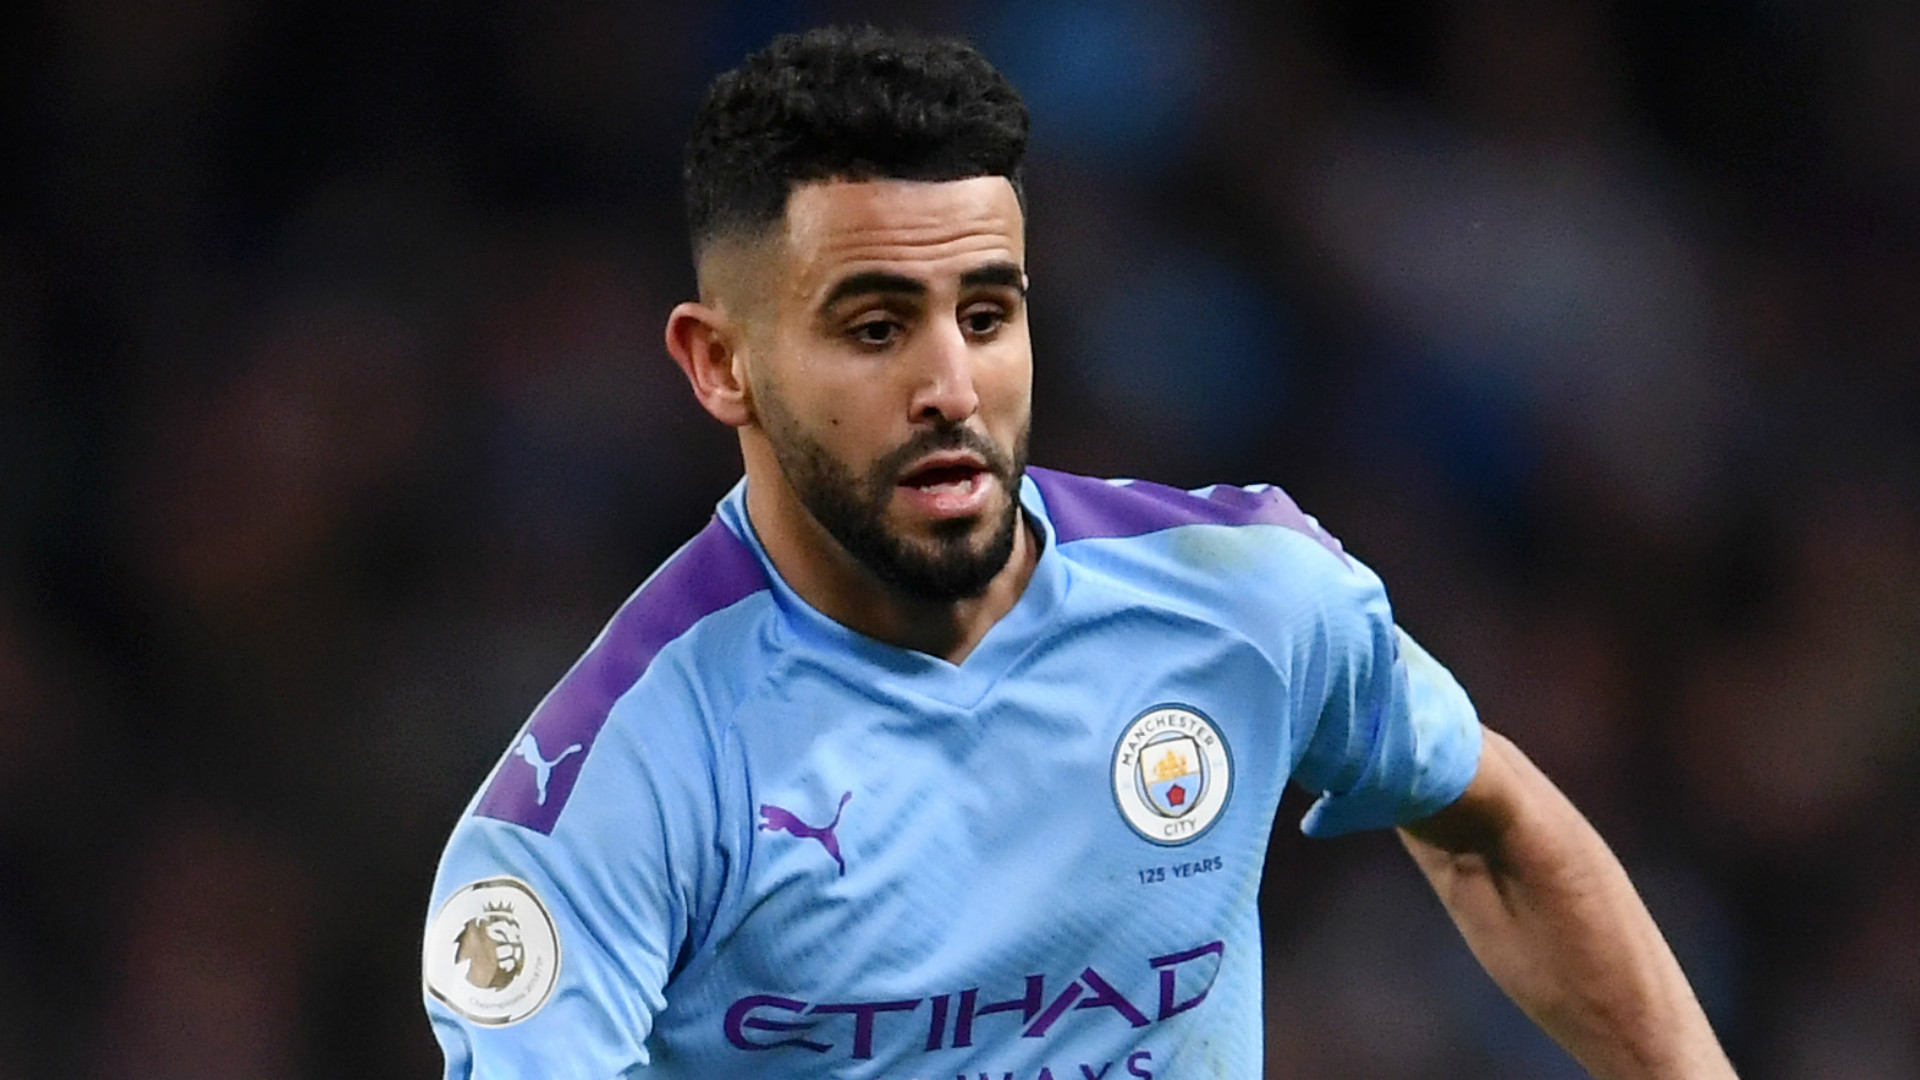 Should anything be read into Pep's recent omission of Mahrez?